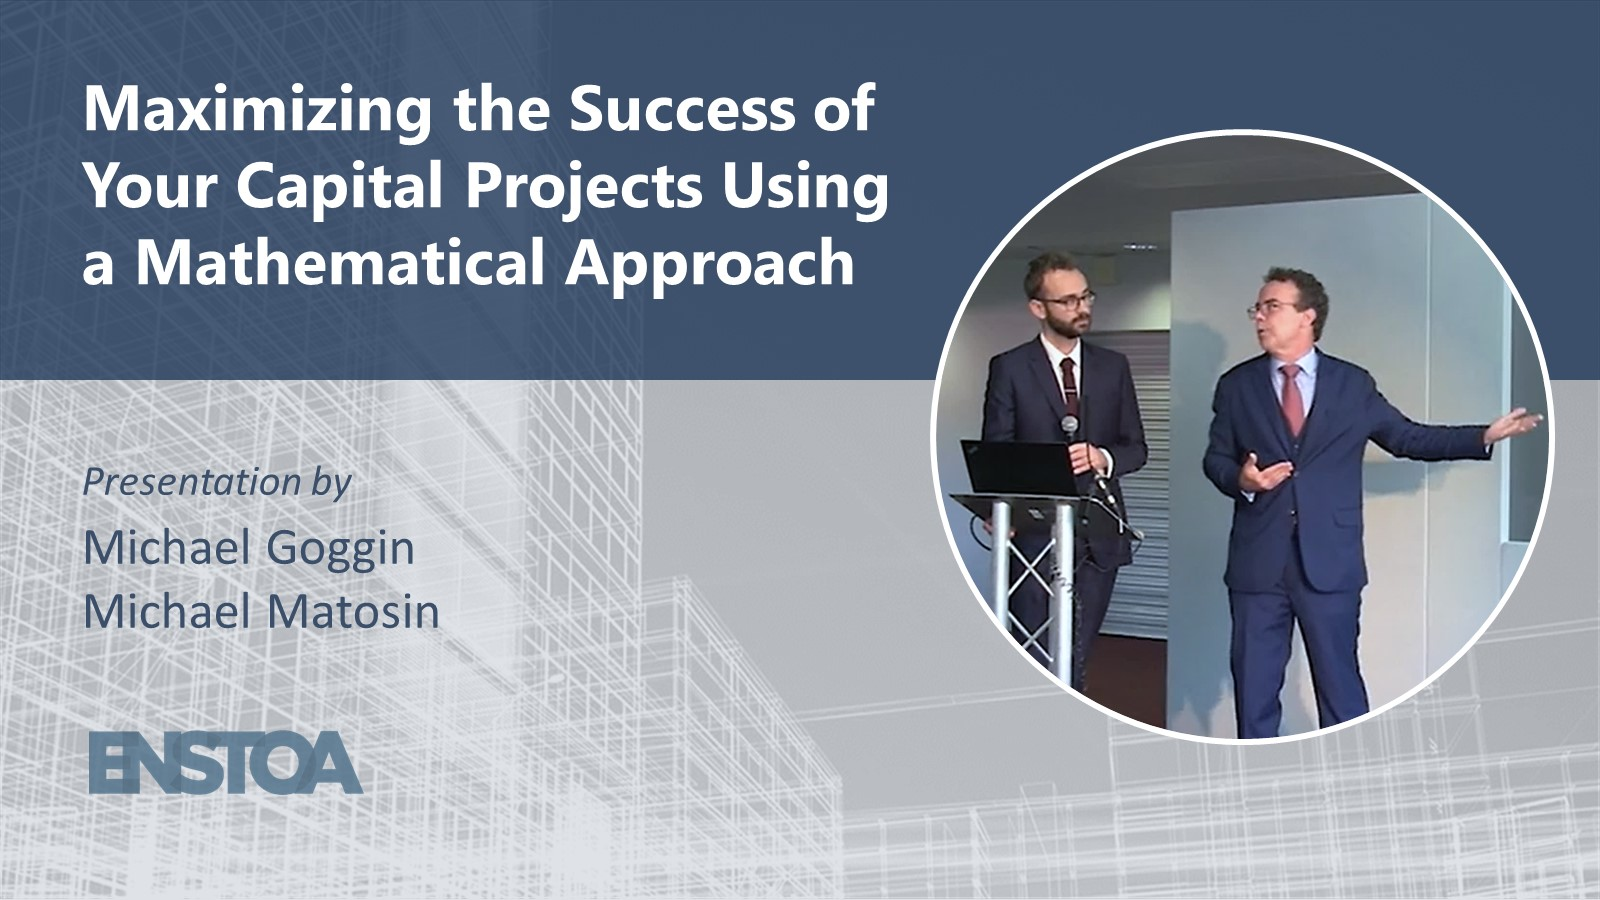 Maximizing the Success of Your Capital Projects using a Mathematical Approach